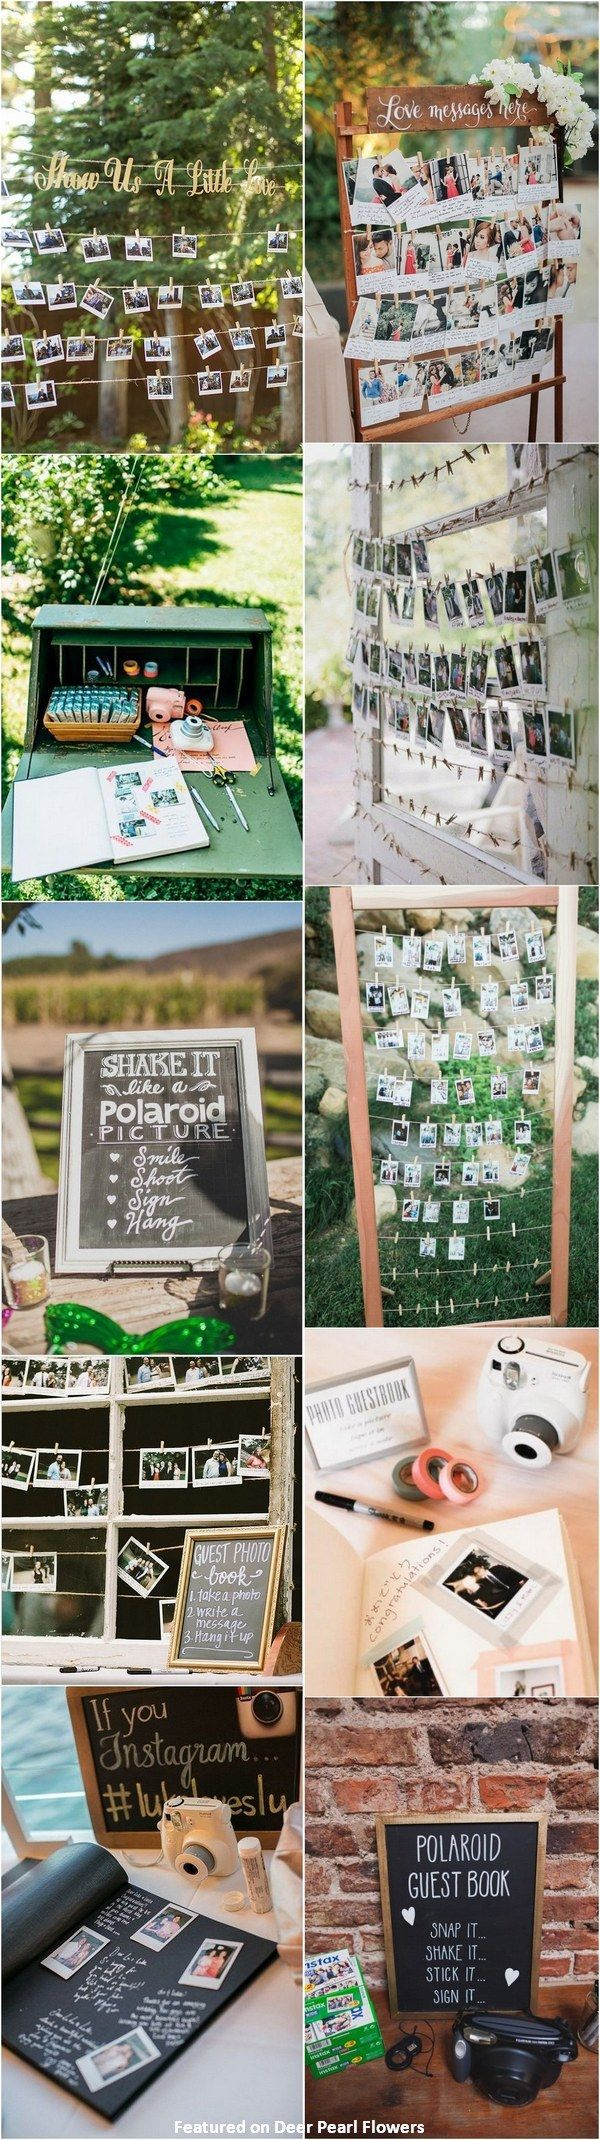 30 Creative Polaroid Wedding Ideas Youu0027ll Love